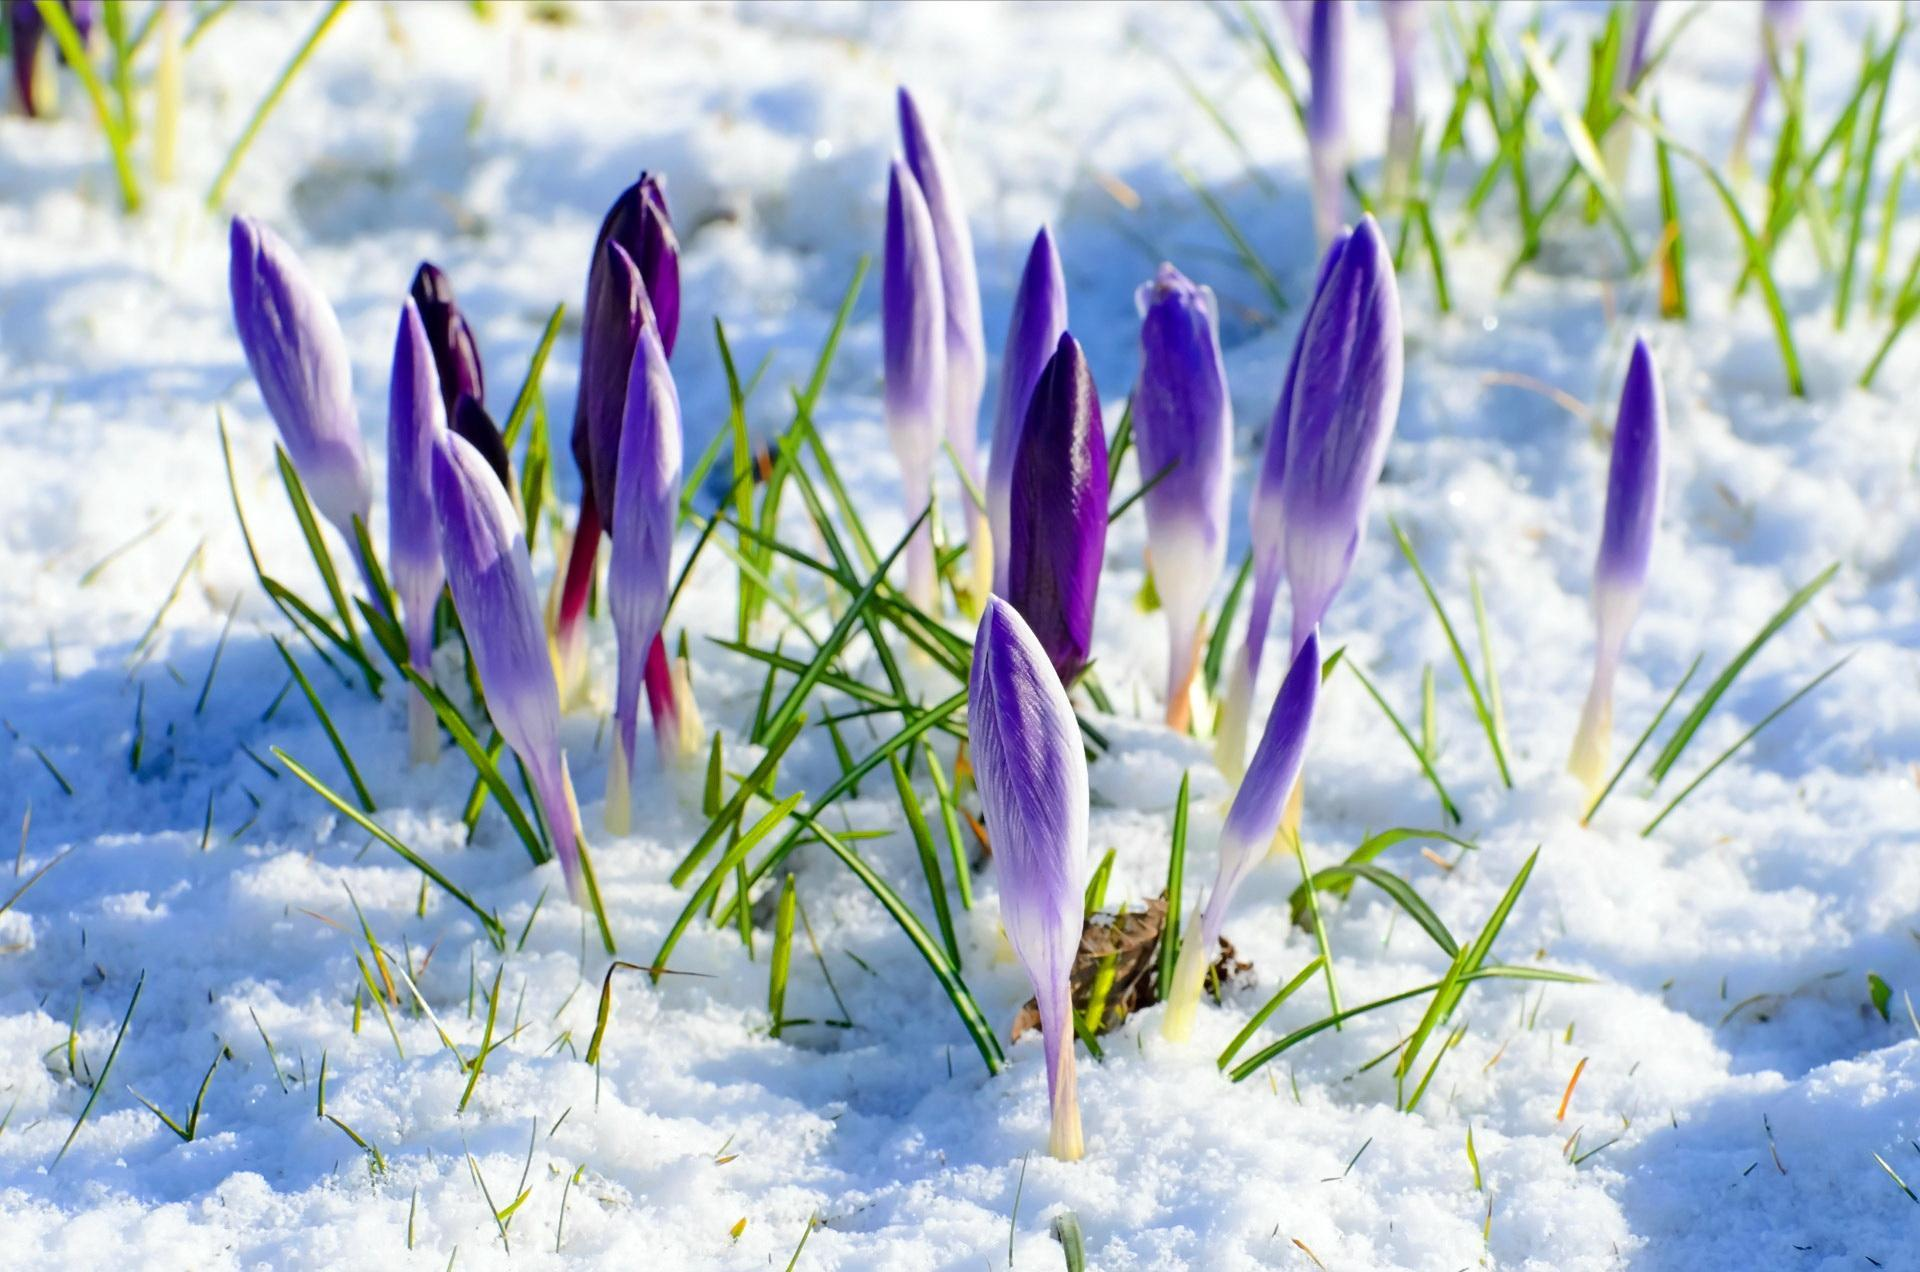 Flowers in Snow Wallpapers   Top Flowers in Snow Backgrounds 1920x1272